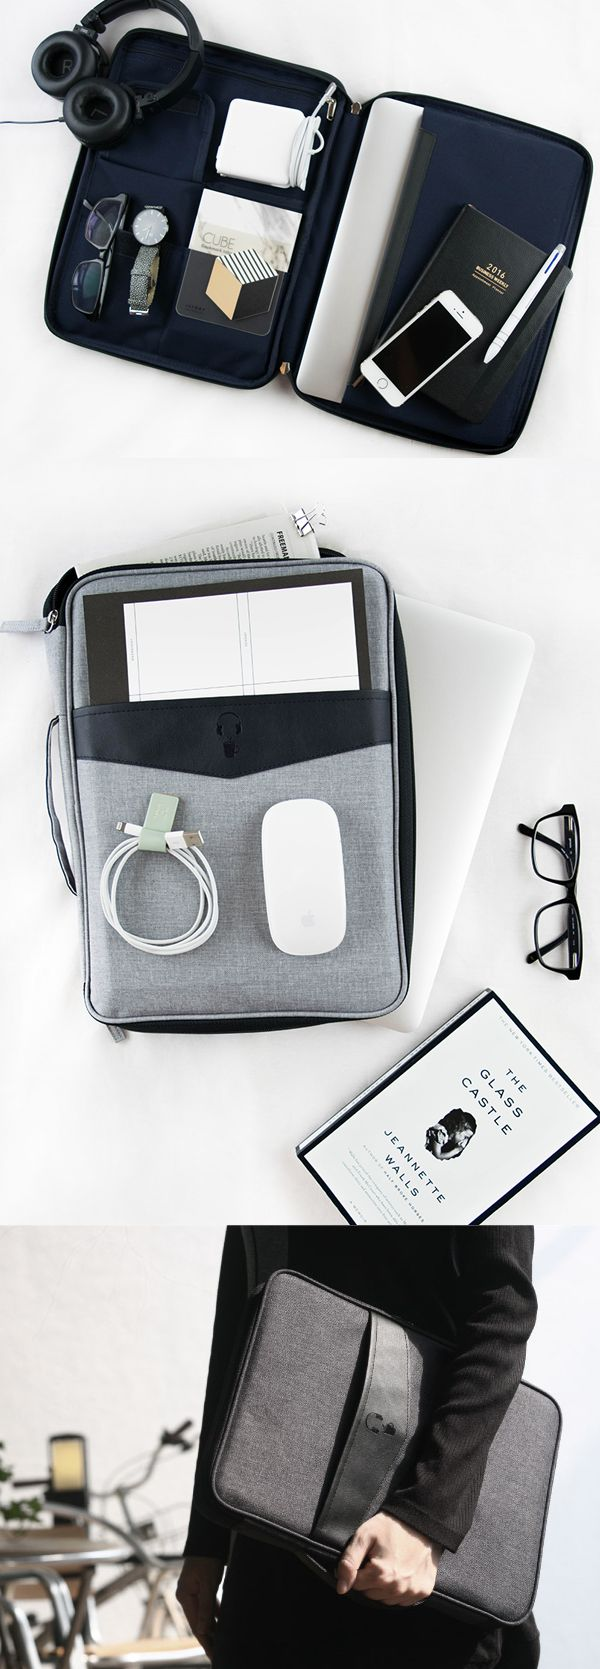 Why carry your laptop and other essentials separately when you can carry them all together? The Better Together 13 in. Laptop Pouch v2 has a padded device pocket that fits 13 inch laptop plus many other pockets to hold pens, cables, notebooks, cell phones, make ups and so many more! Carry all the essentials in one and enjoy well-organized and convenient life!